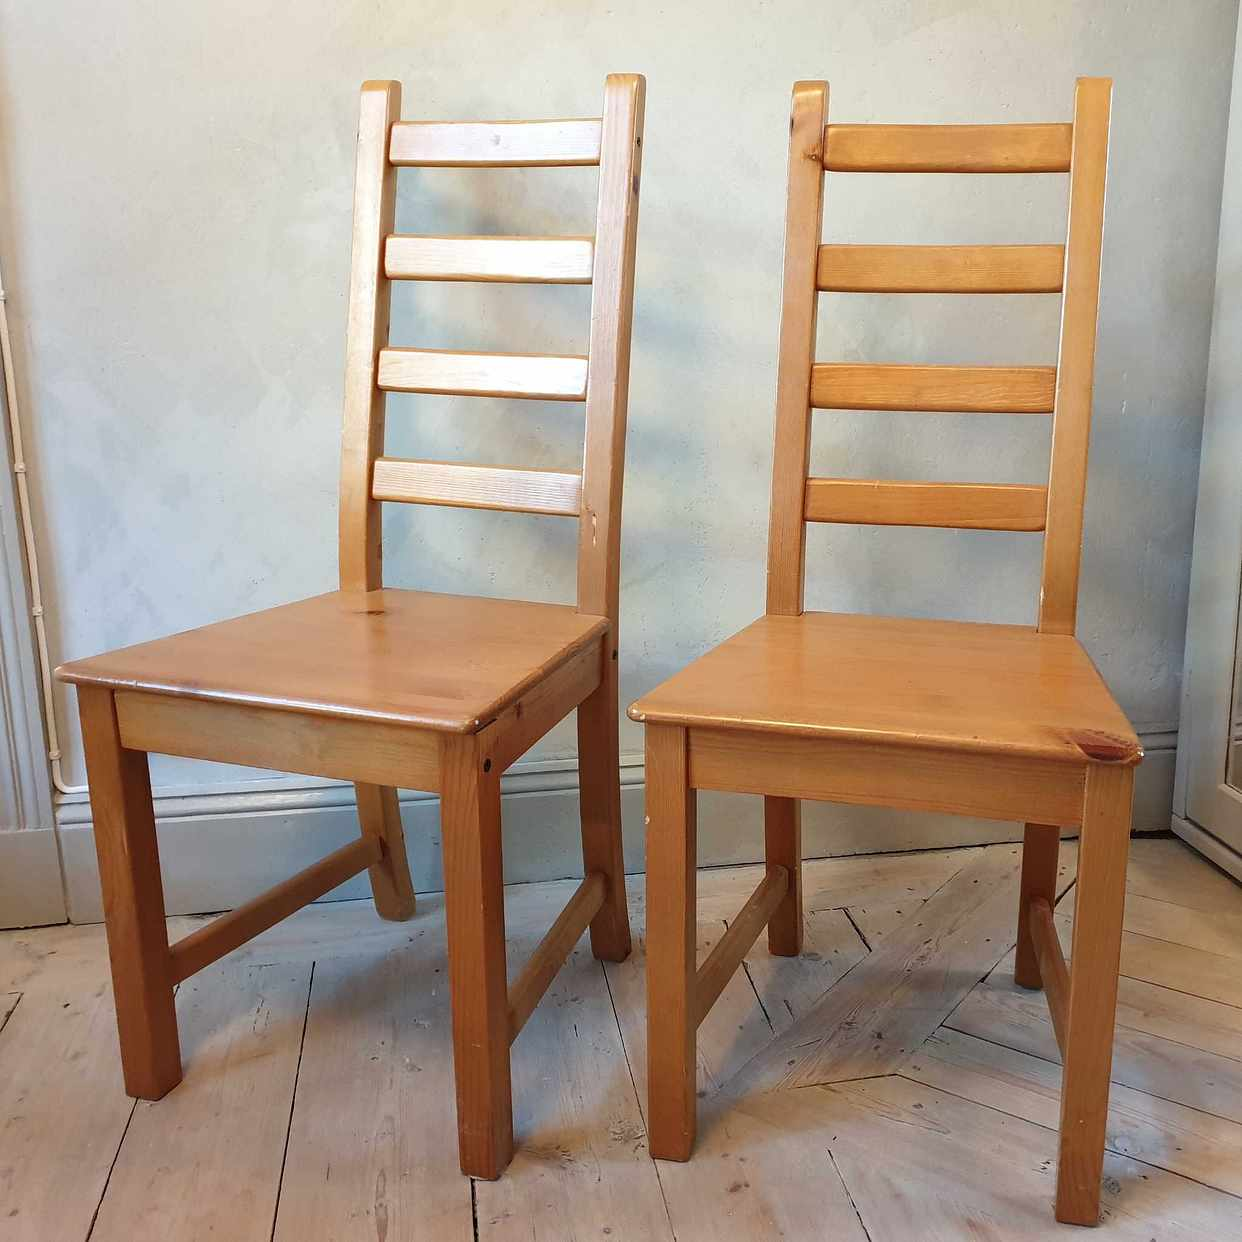 image of 2 chairs for free - Stockholm